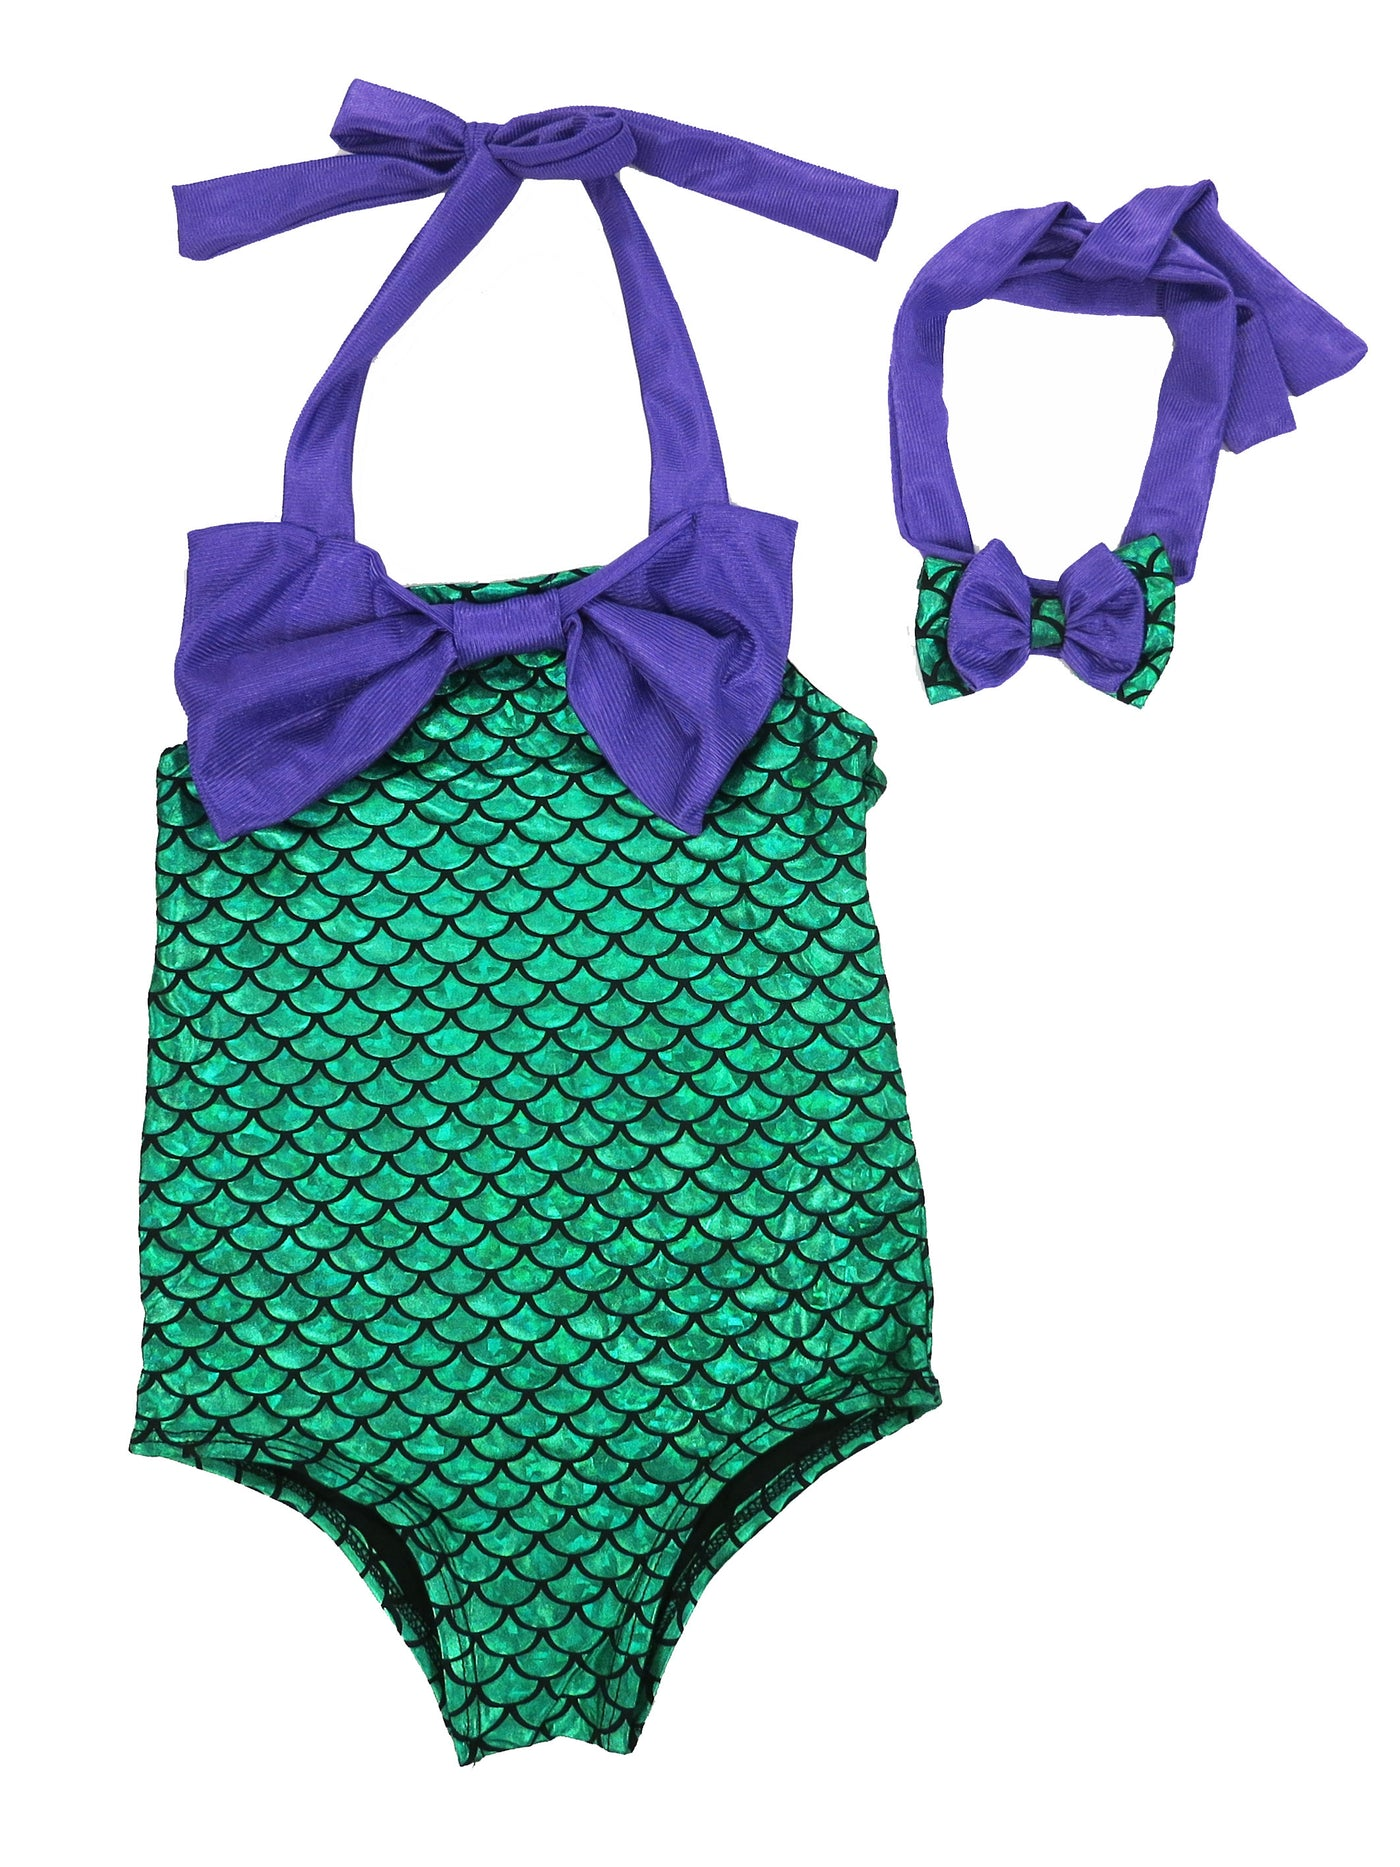 Green Mermaid 3 Pieces Swimming Suit Wenchoice